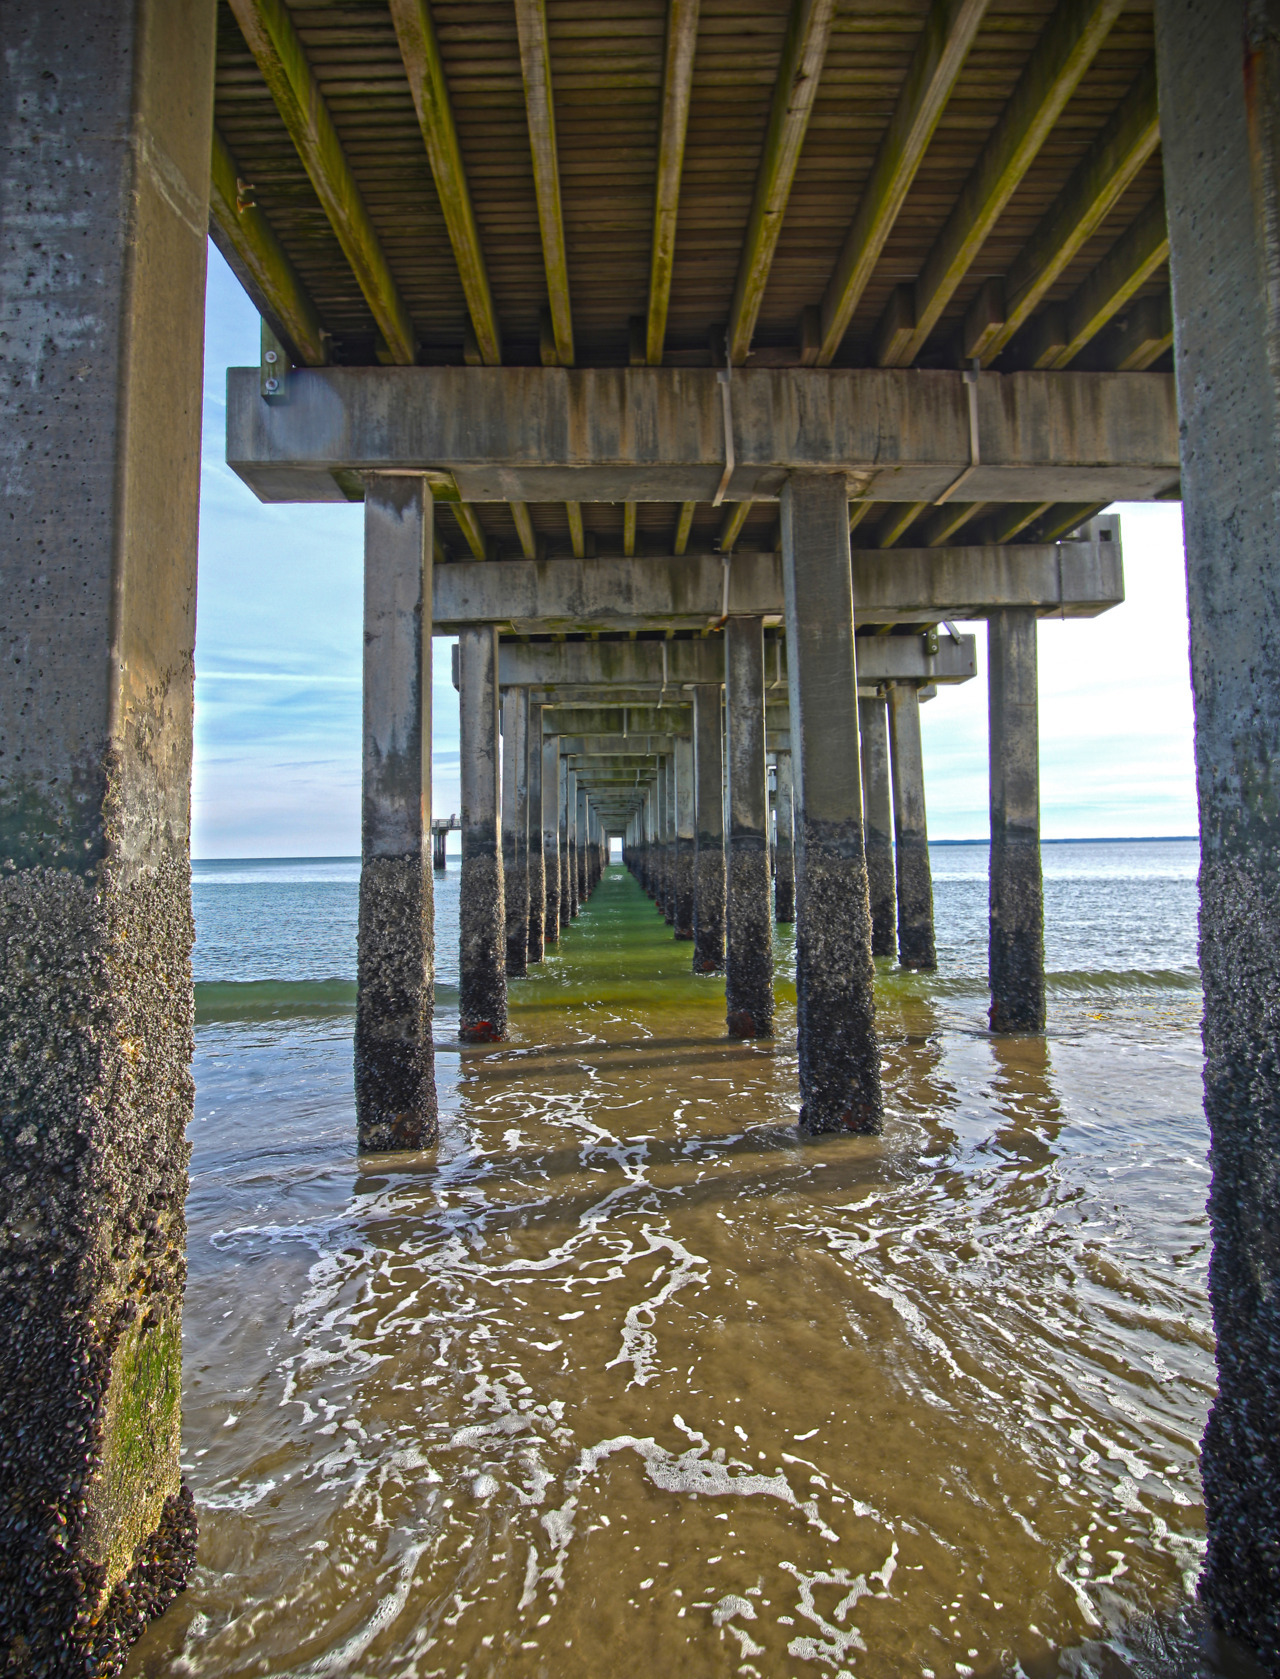 Under the pier. Coney Island Beach Canon 5D Mark II, Tokina 16-28mm f/2.8